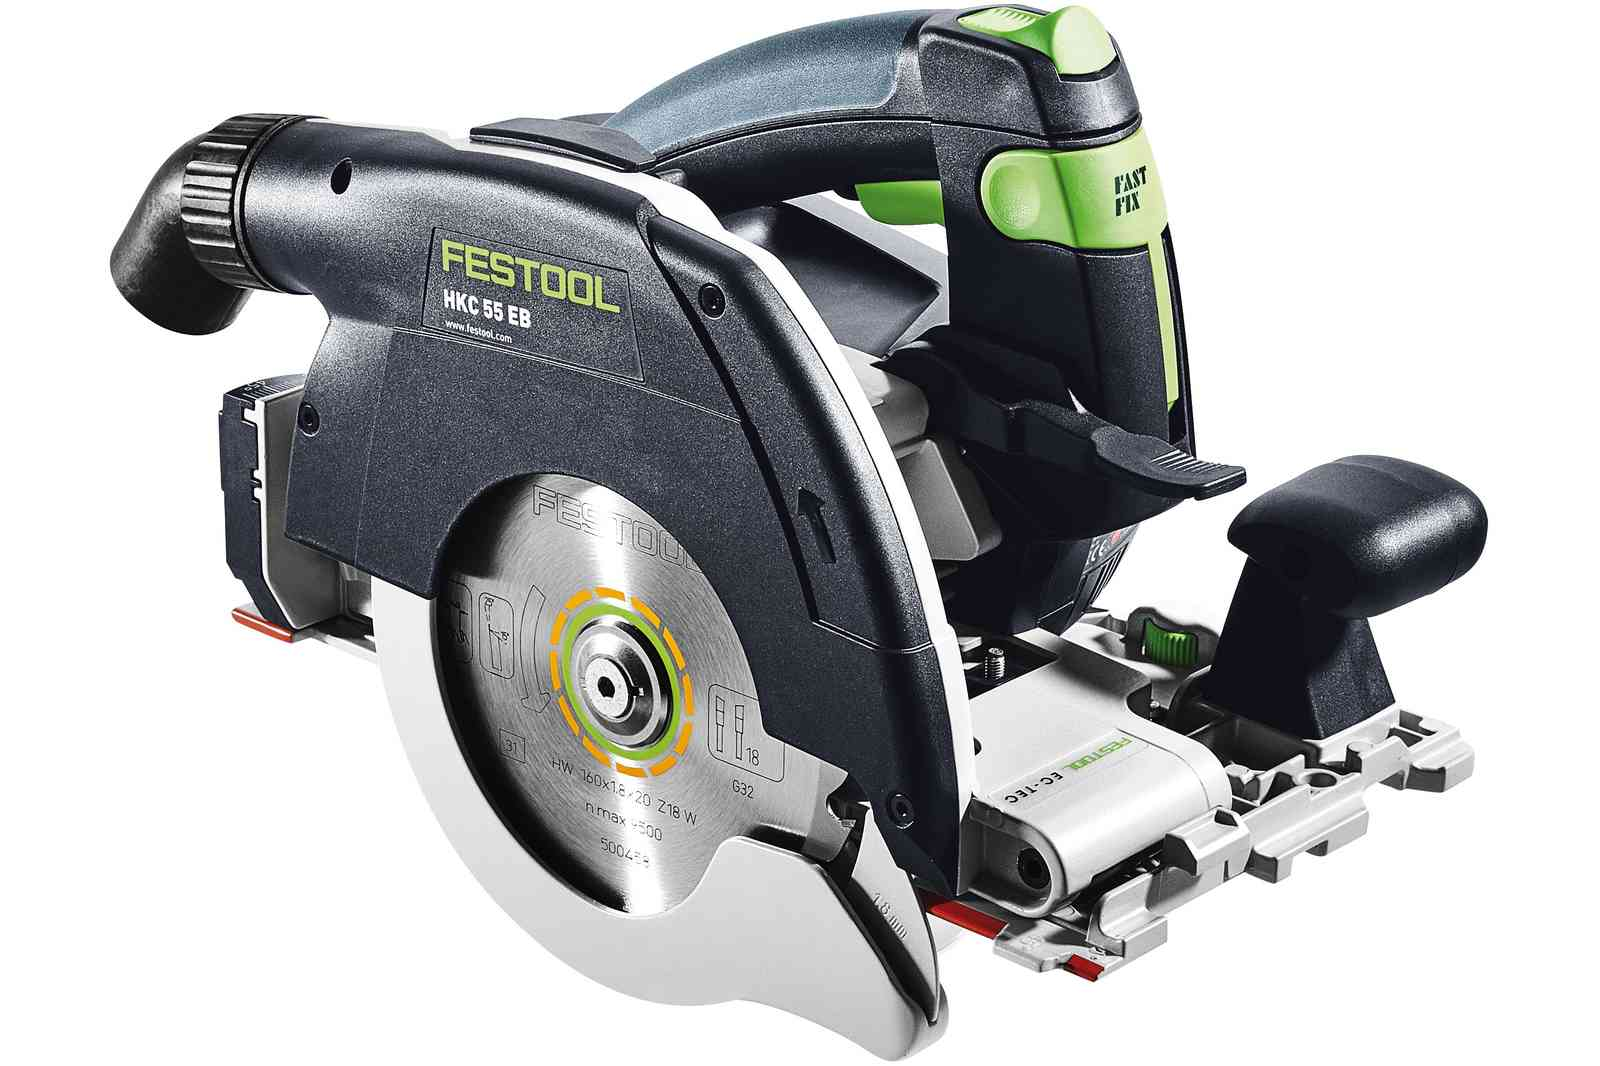 FESTOOL- POWER TOOLS & ACCESSORIES